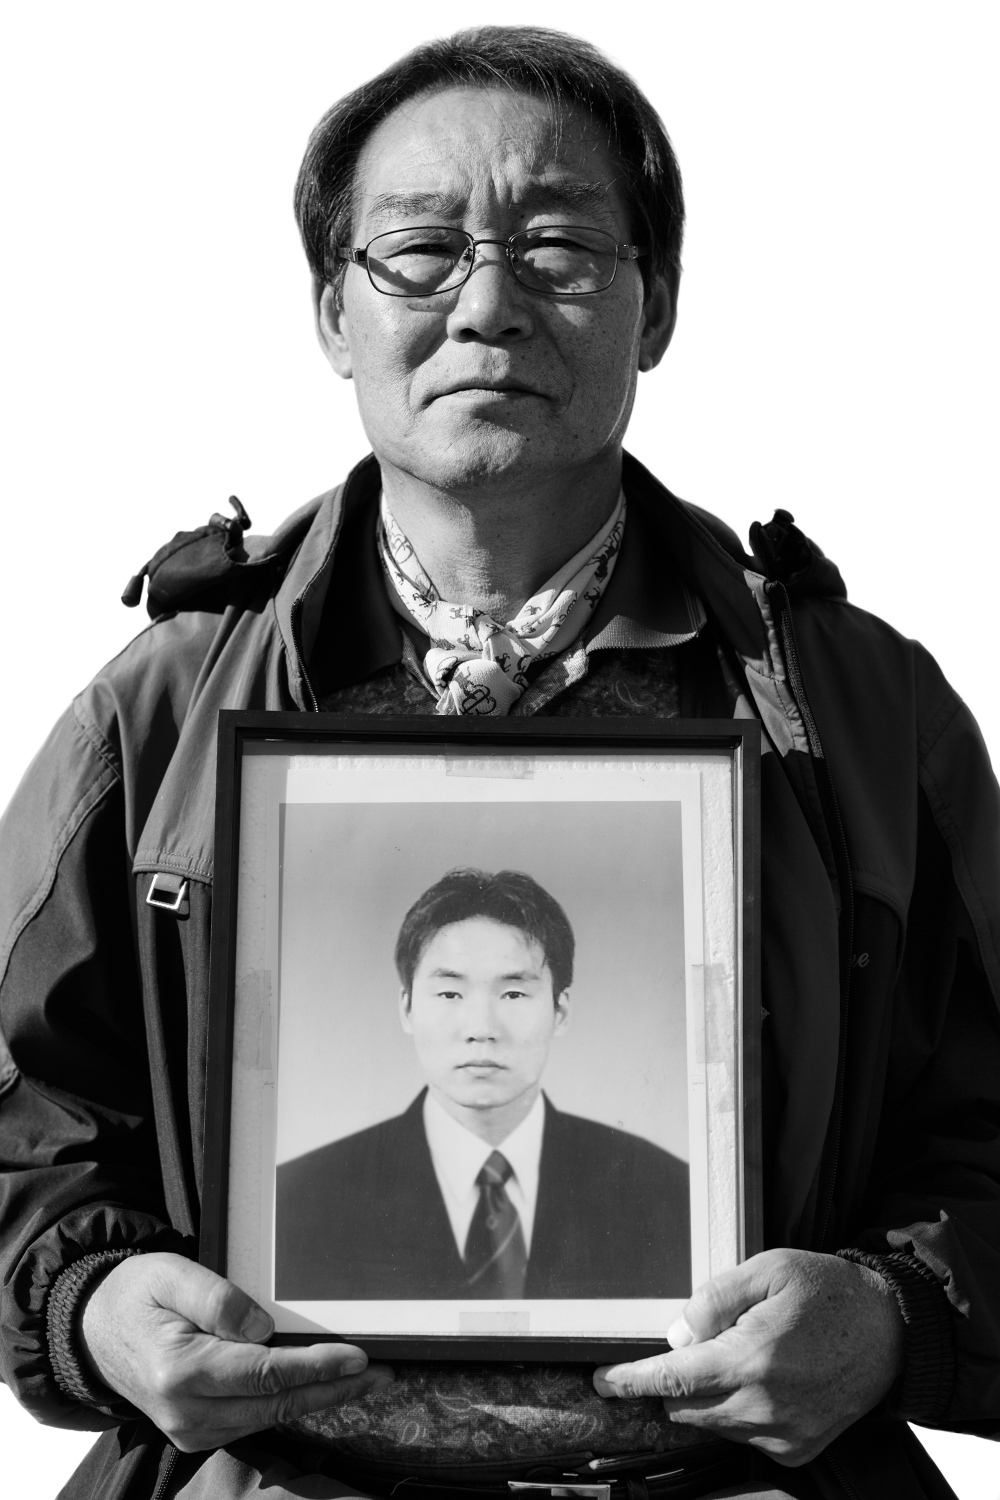 Park Hyung-jip holds a portrait of his deceased son Park Jin-hyuk in Ulsan, South Korea on Nov. 5, 2013. Park Jin-hyuk, only one son of Park Hyung-jip, died of leukemia on November 2005. He worked at Samsung SDI factory in Ulsan, South Korea in 2004.